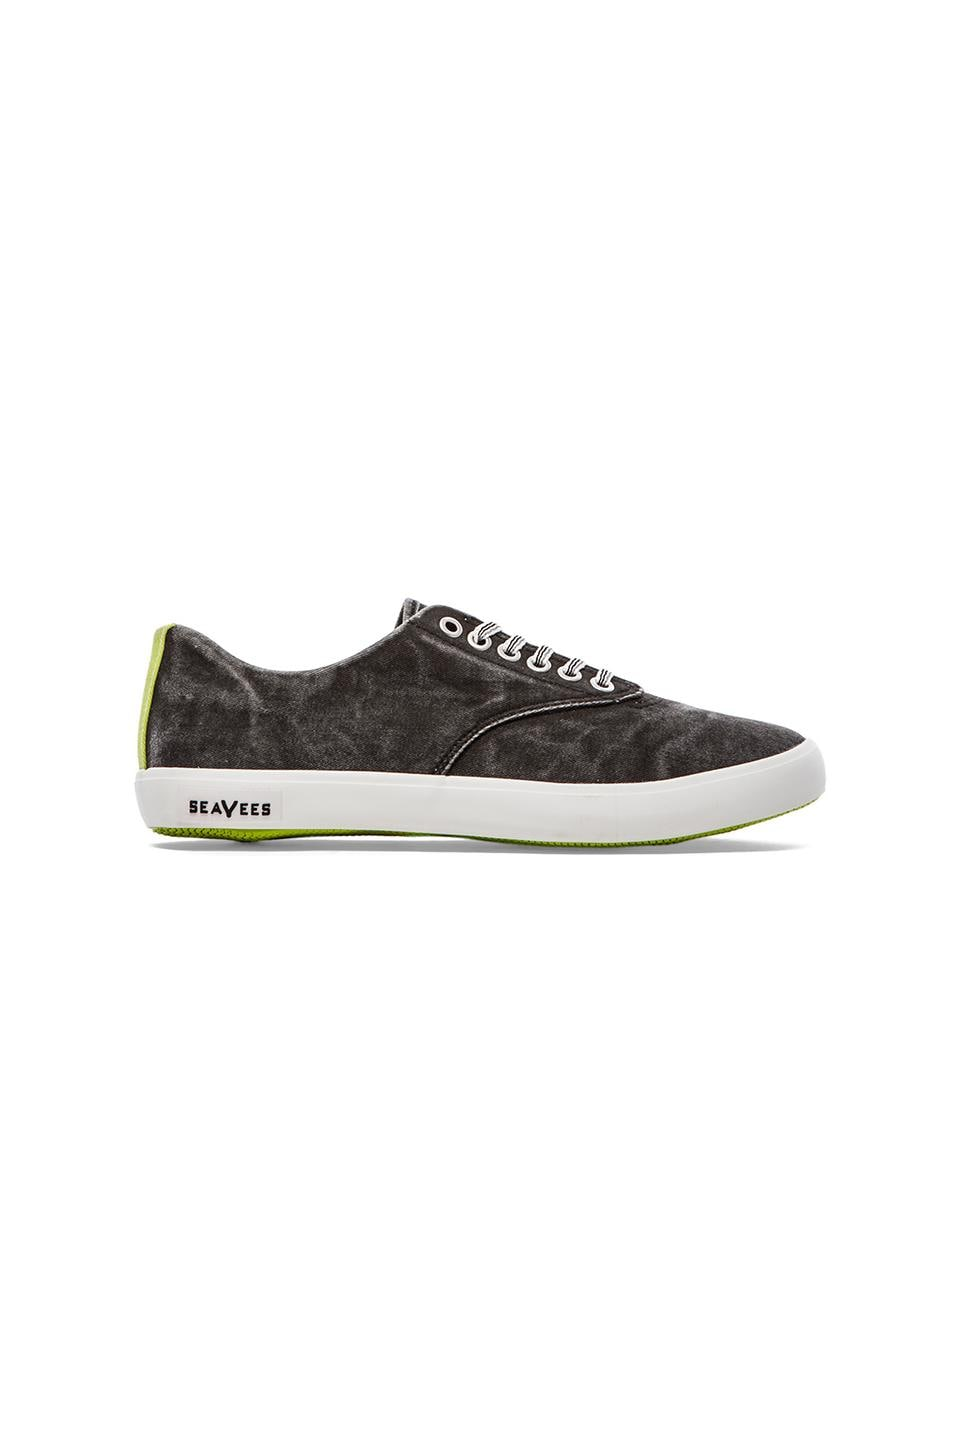 SeaVees x Katin USA 08/63 Hermosa Plimsoll Sneaker in Black Wash